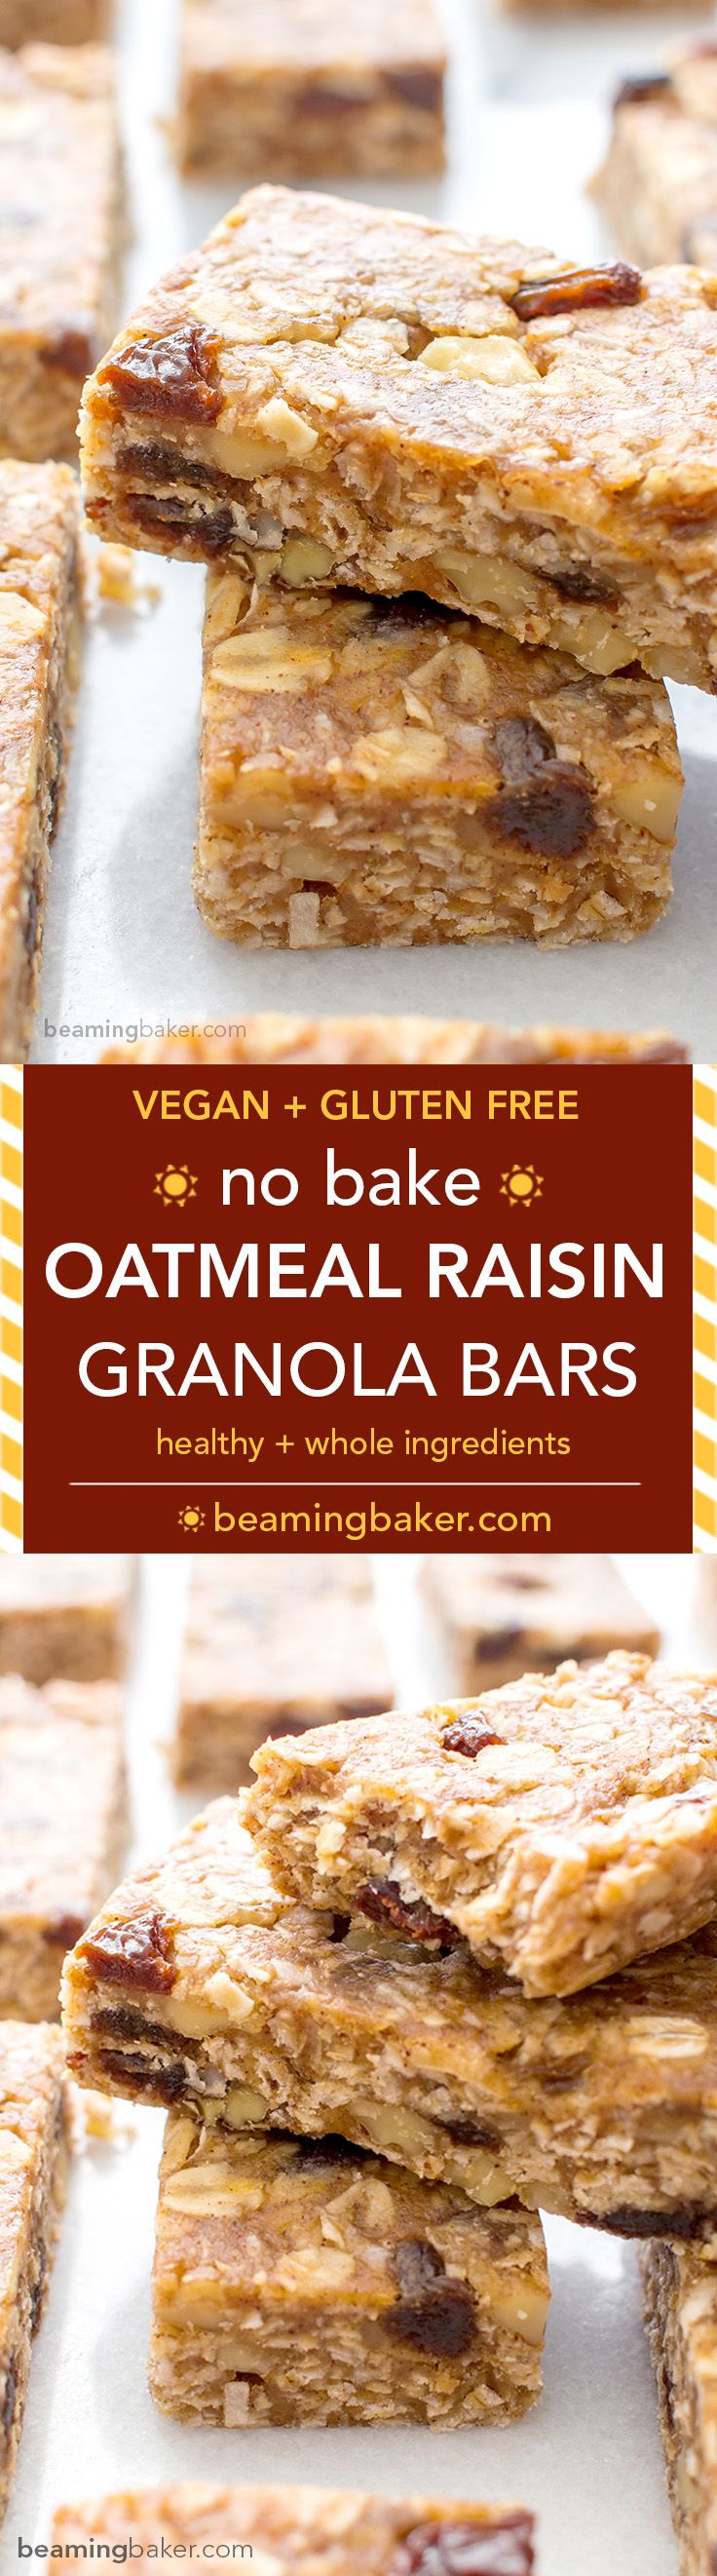 No Bake Oatmeal Raisin Granola Bars (V+GF): Soft and chewy granola bars that taste just like an oatmeal raisin cookie. An easy Vegan and Gluten Free recipe made with whole ingredients. BEAMINGBAKER.CO(Vegan Oatmeal Maple)